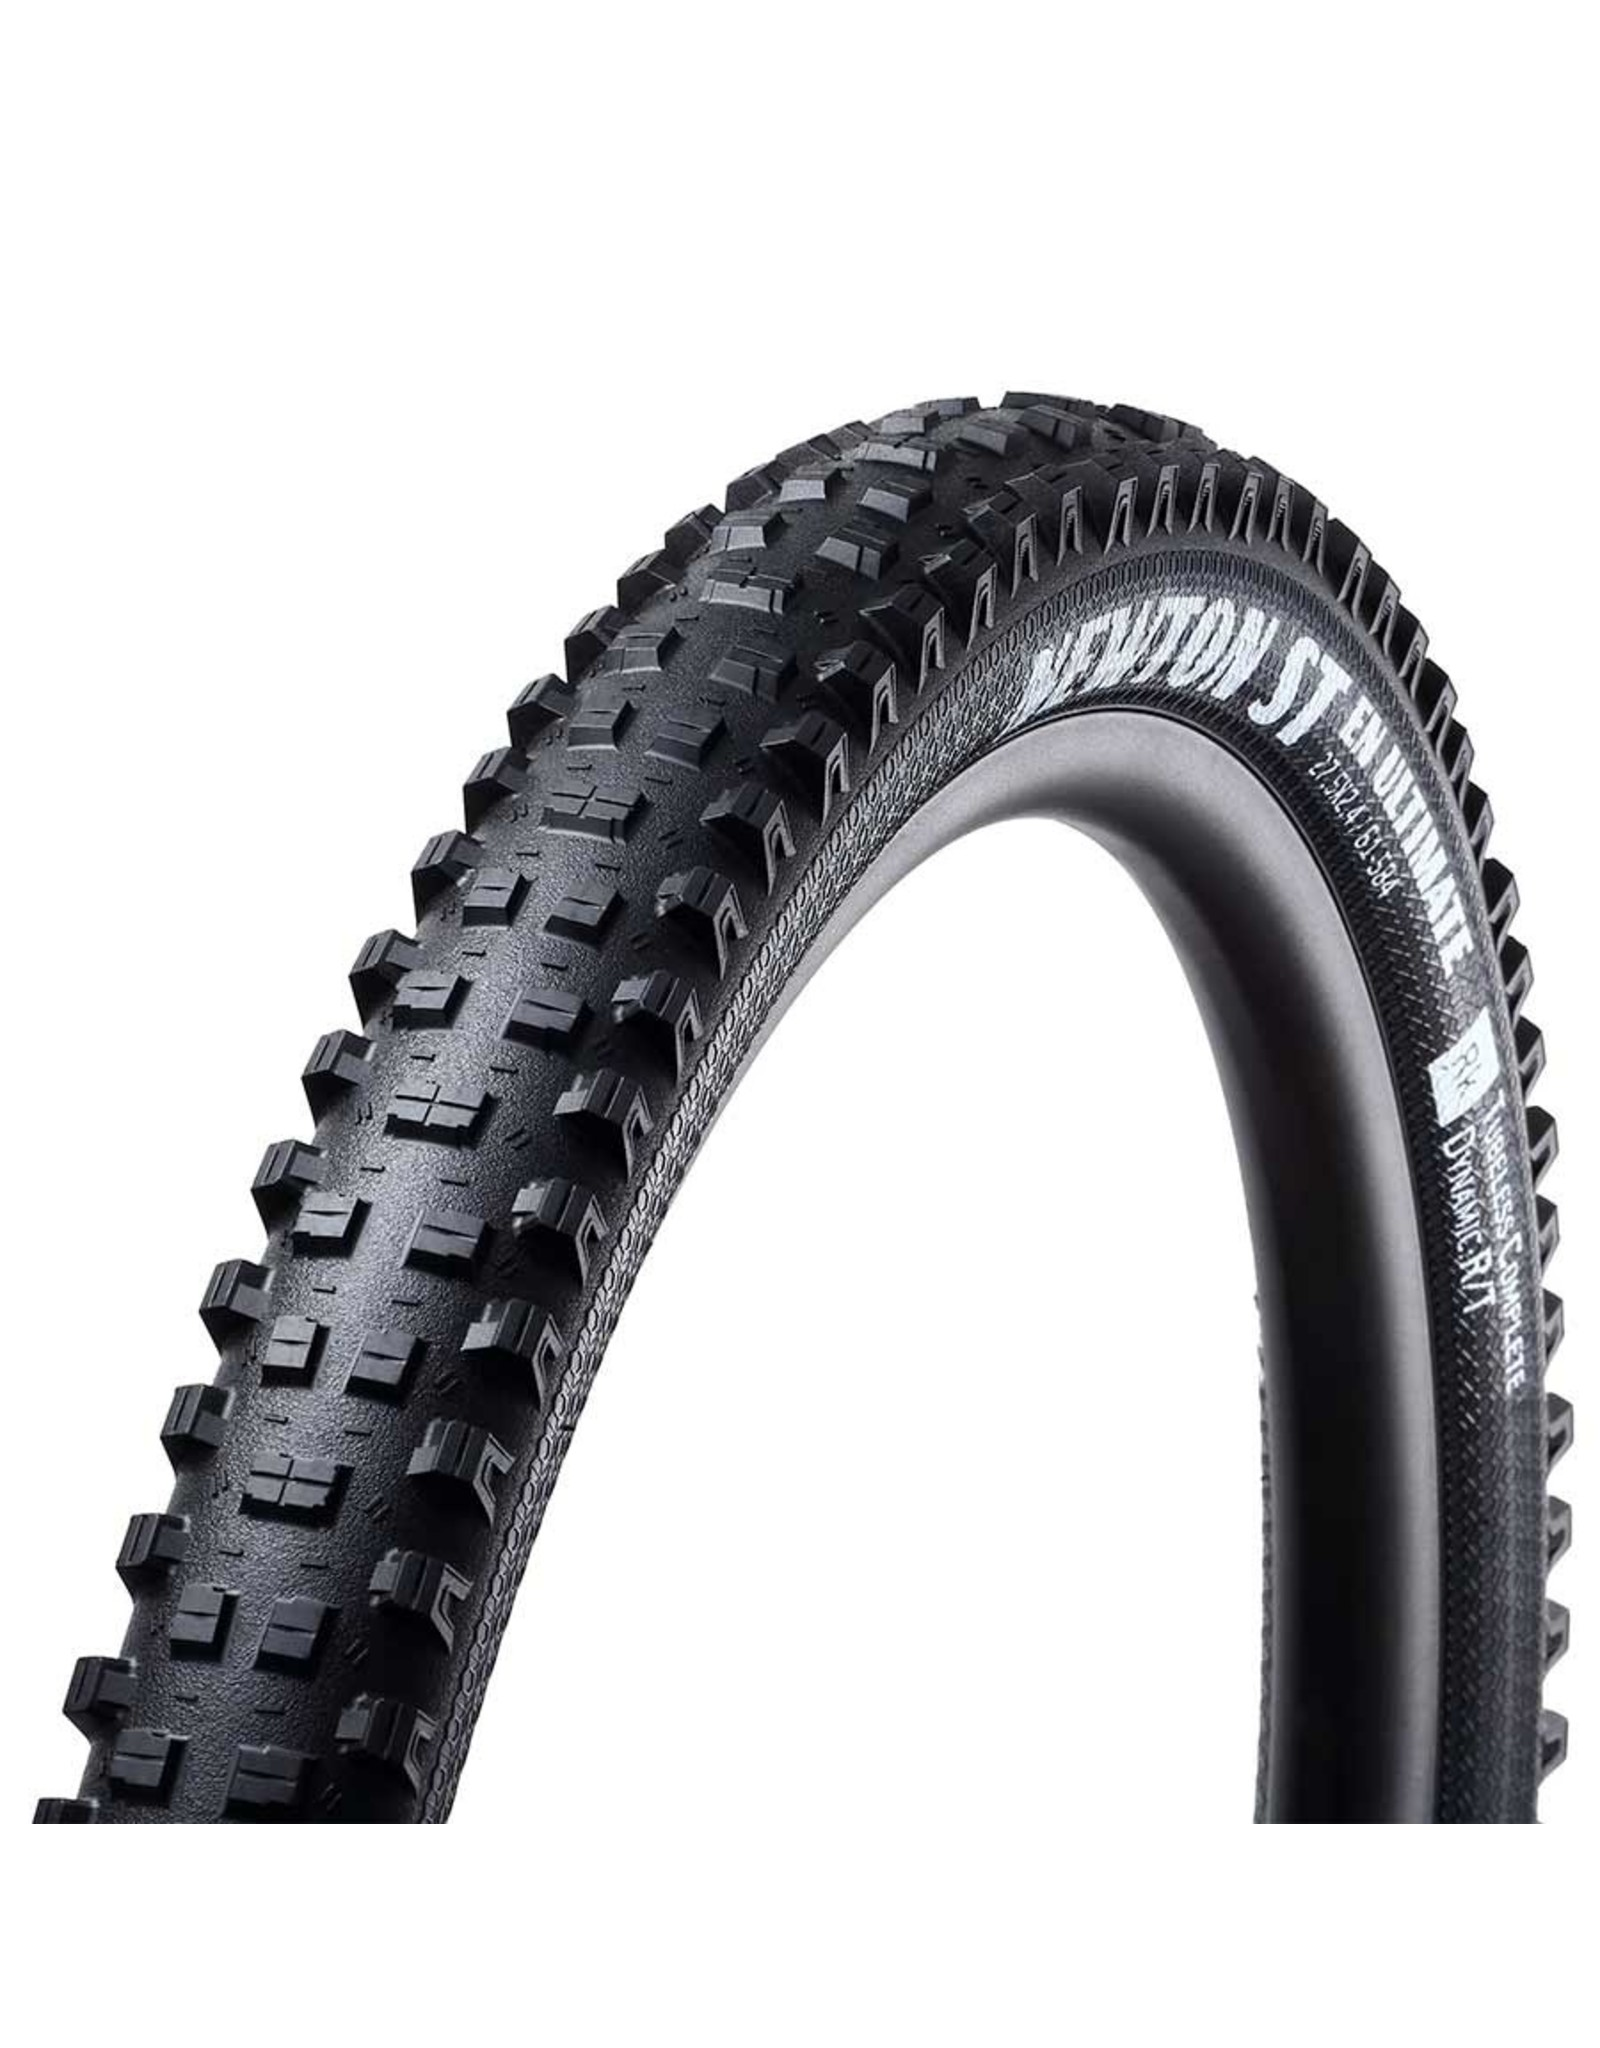 Goodyear Goodyear, Newton-ST, Tire, 27.5''x2.40, Folding, Tubeless Ready, Dynamic:RS/T, DH Ultimate, 240TPI, Black